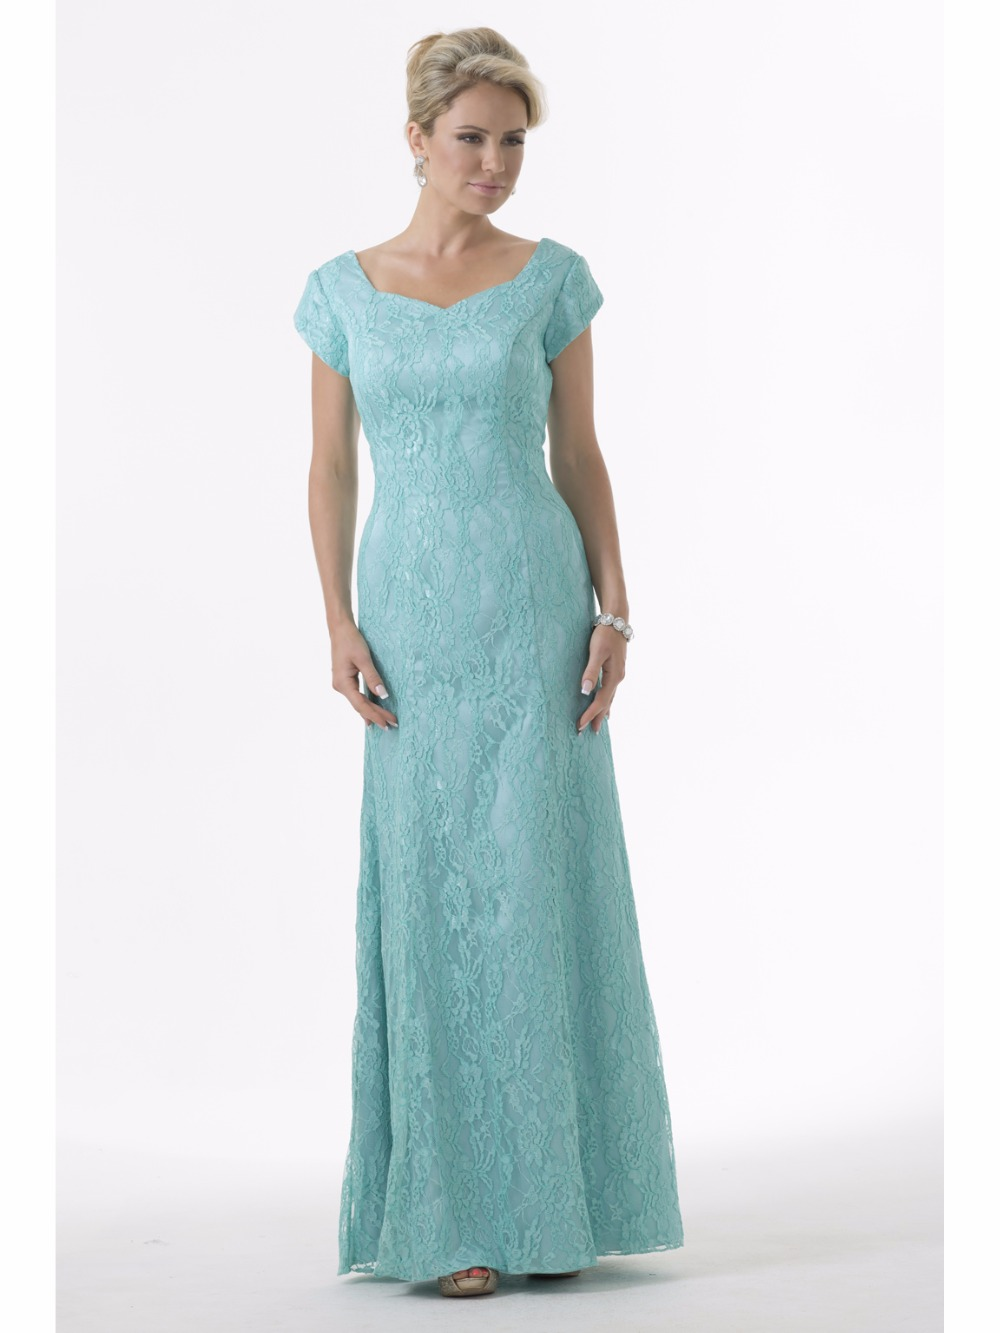 Mint Green Lace Modest Bridesmaid Dresses 2017 With Cap Sleeves ...